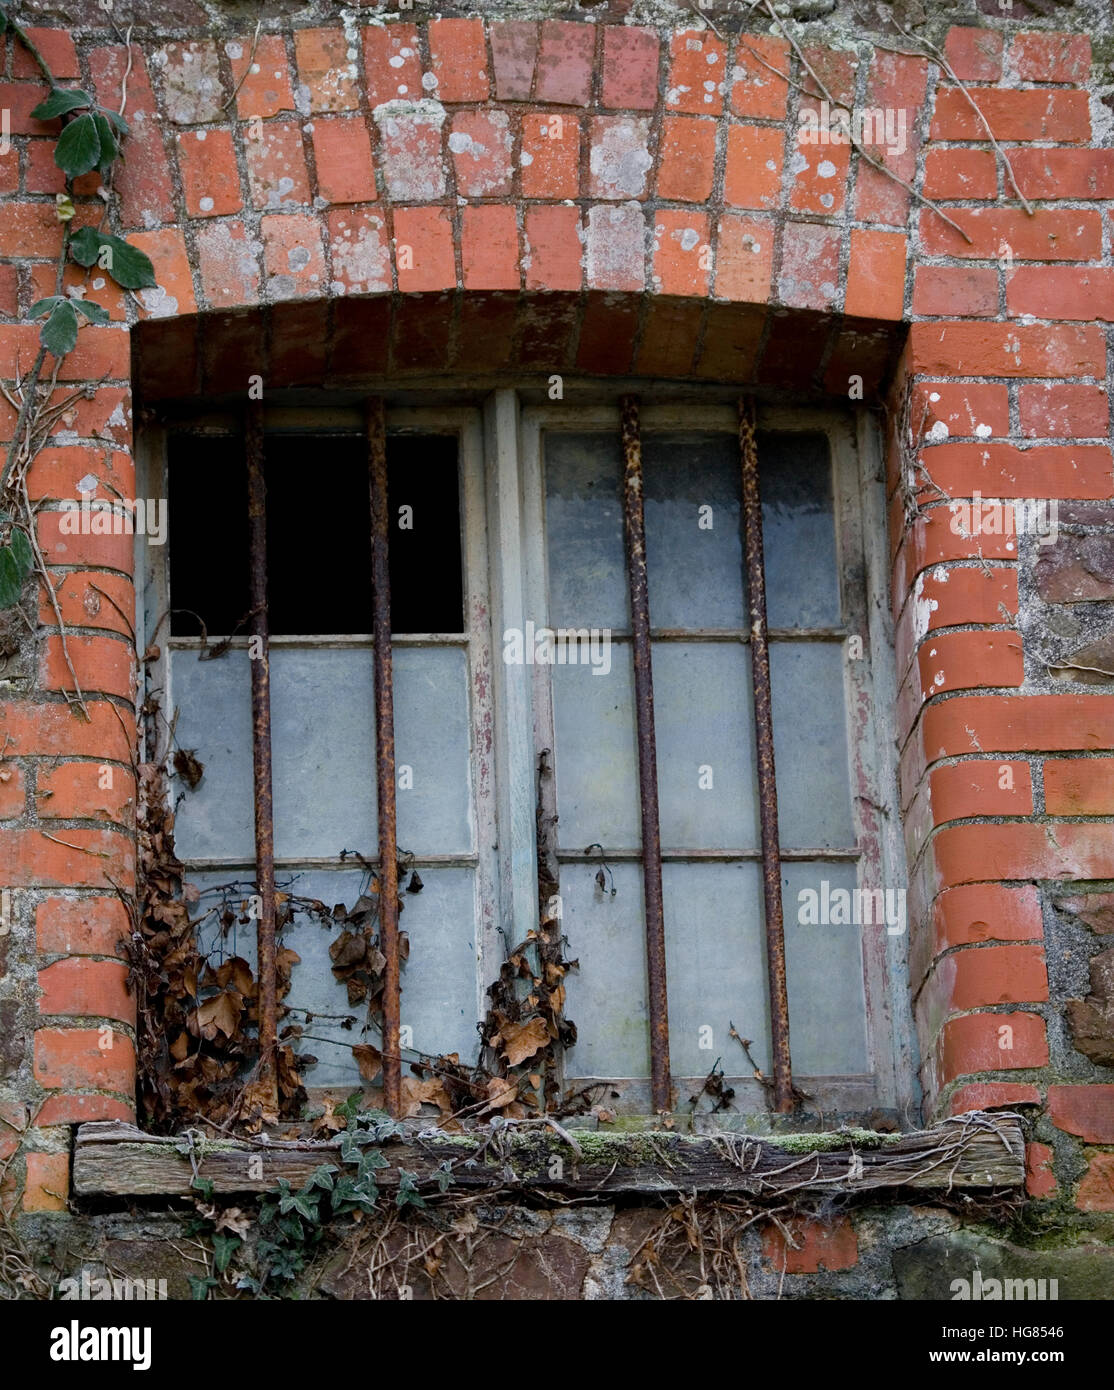 barred window in a farm building - Stock Image